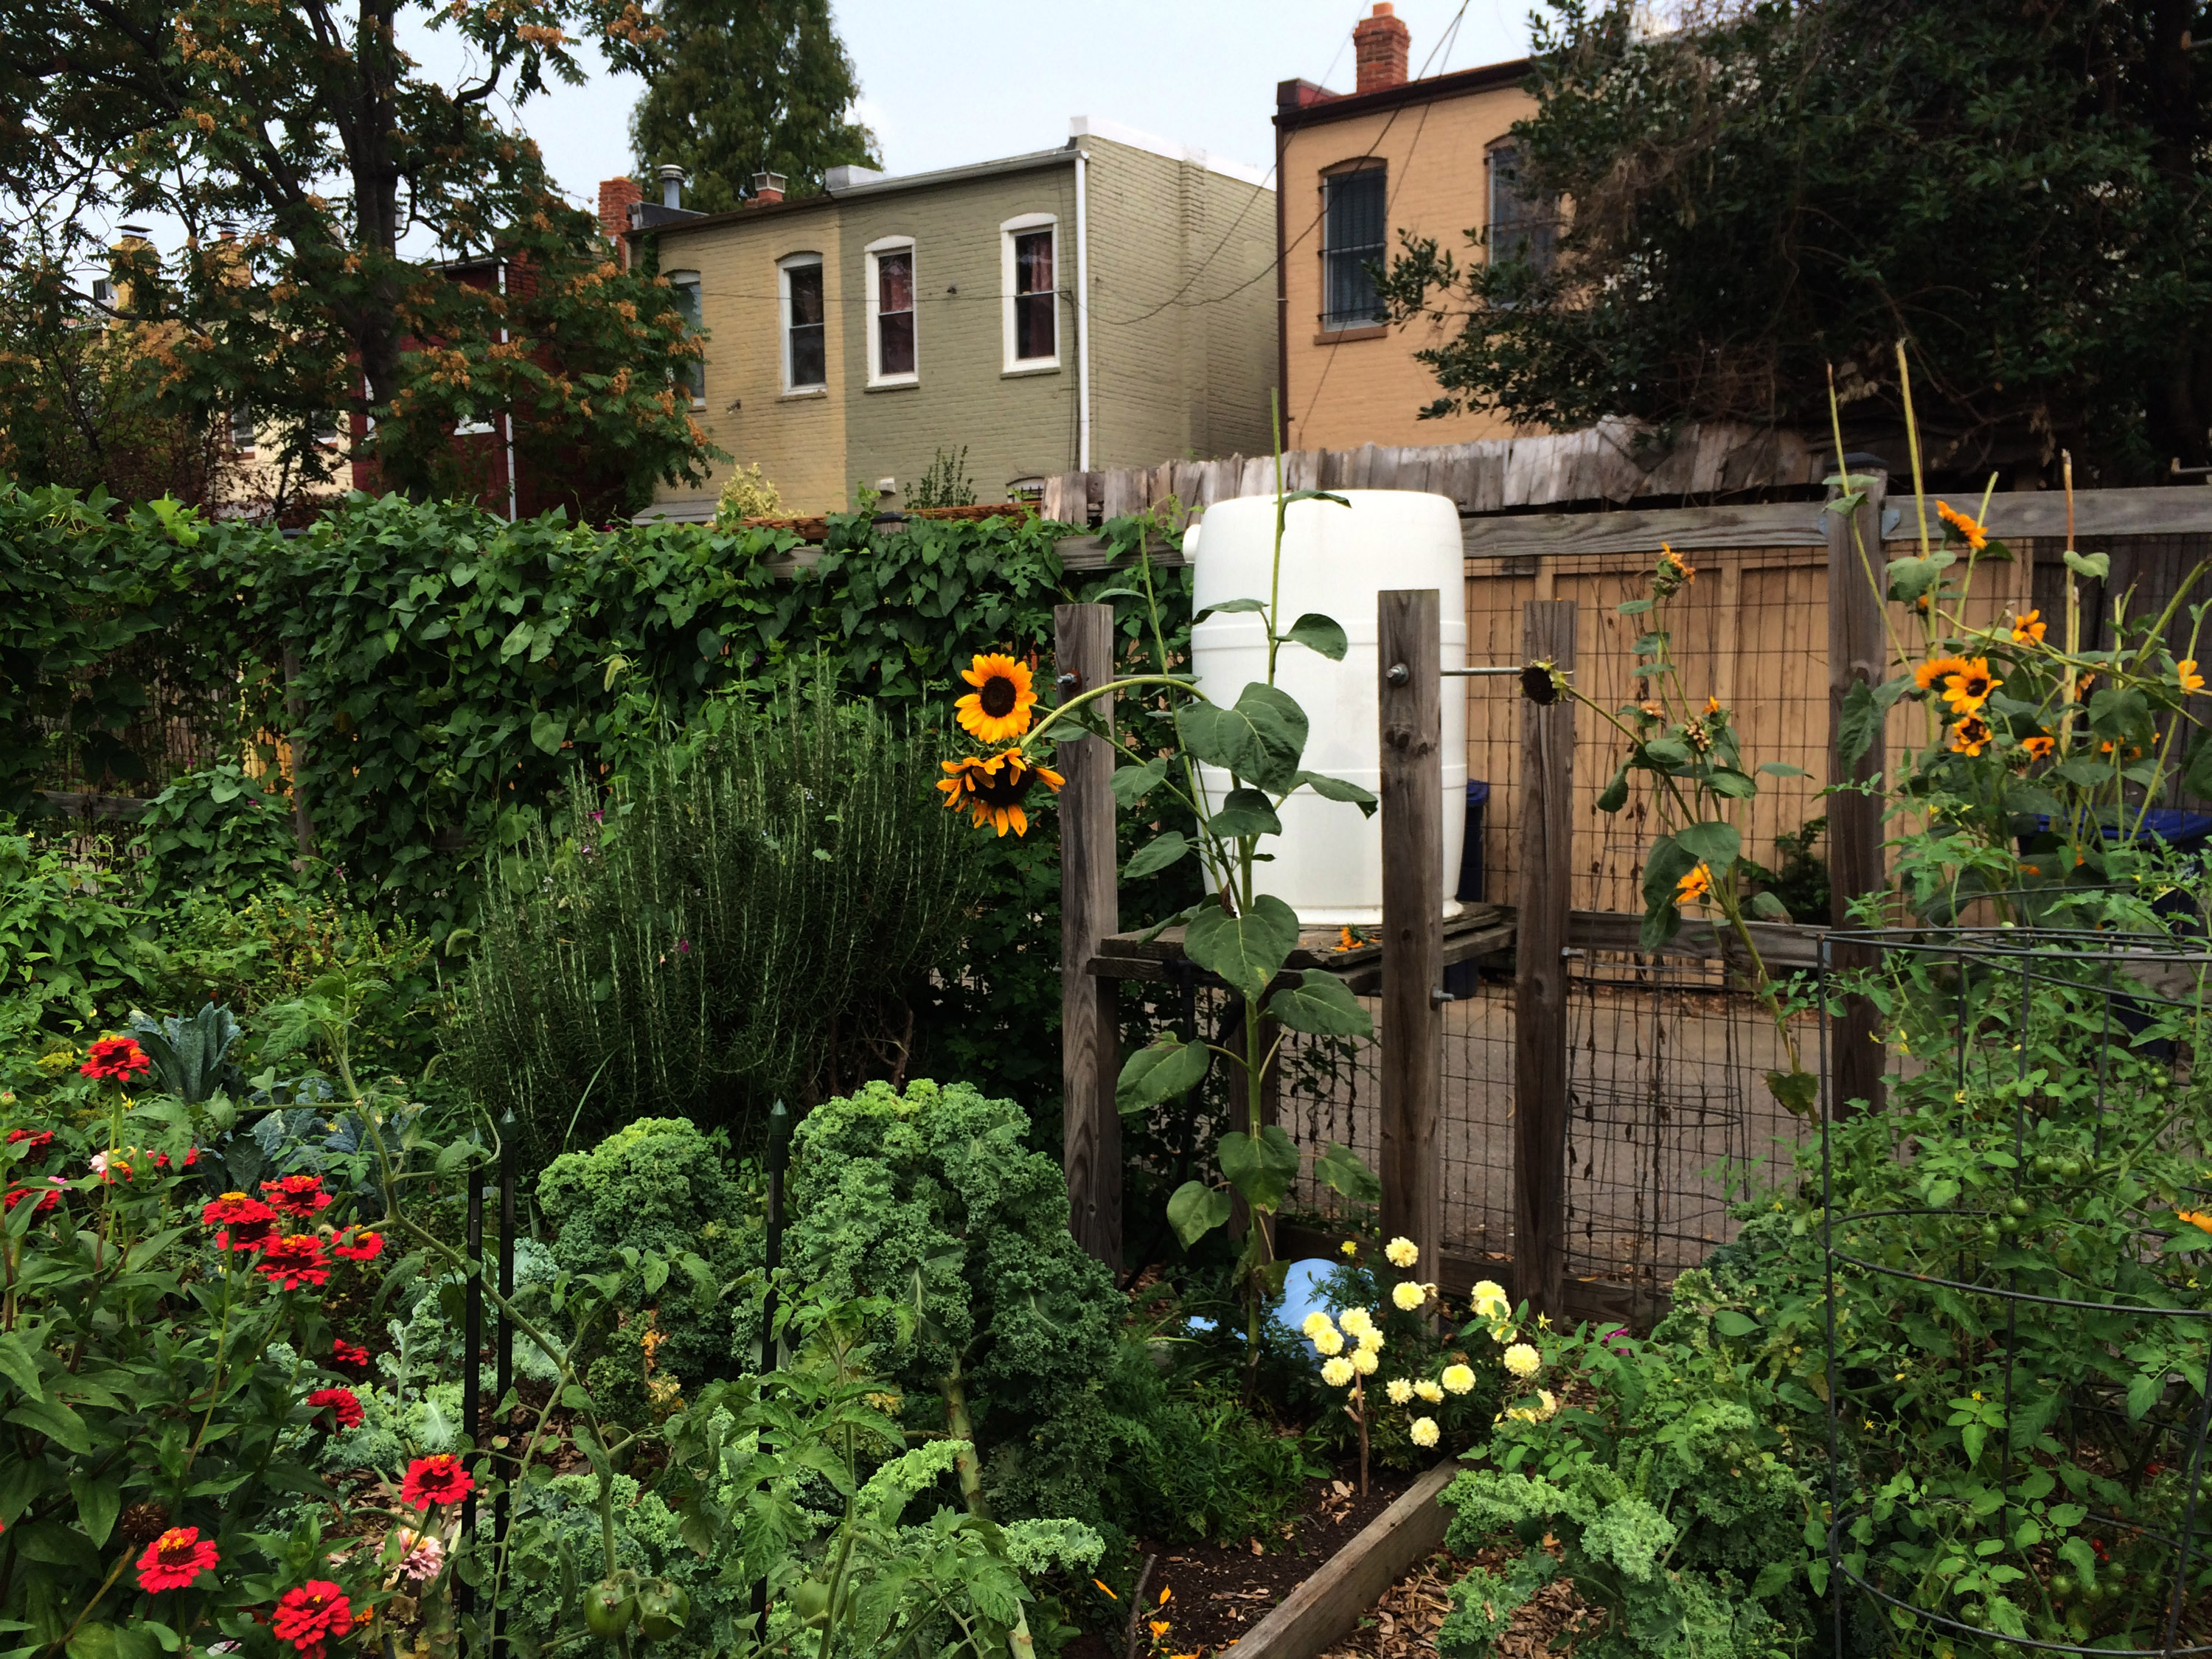 Capitol Hill Has More Colorful Community Gardens Than Any Other  Neighborhood In The City. Three Gardens Are Part Of The DC Department Of  Parks And ...